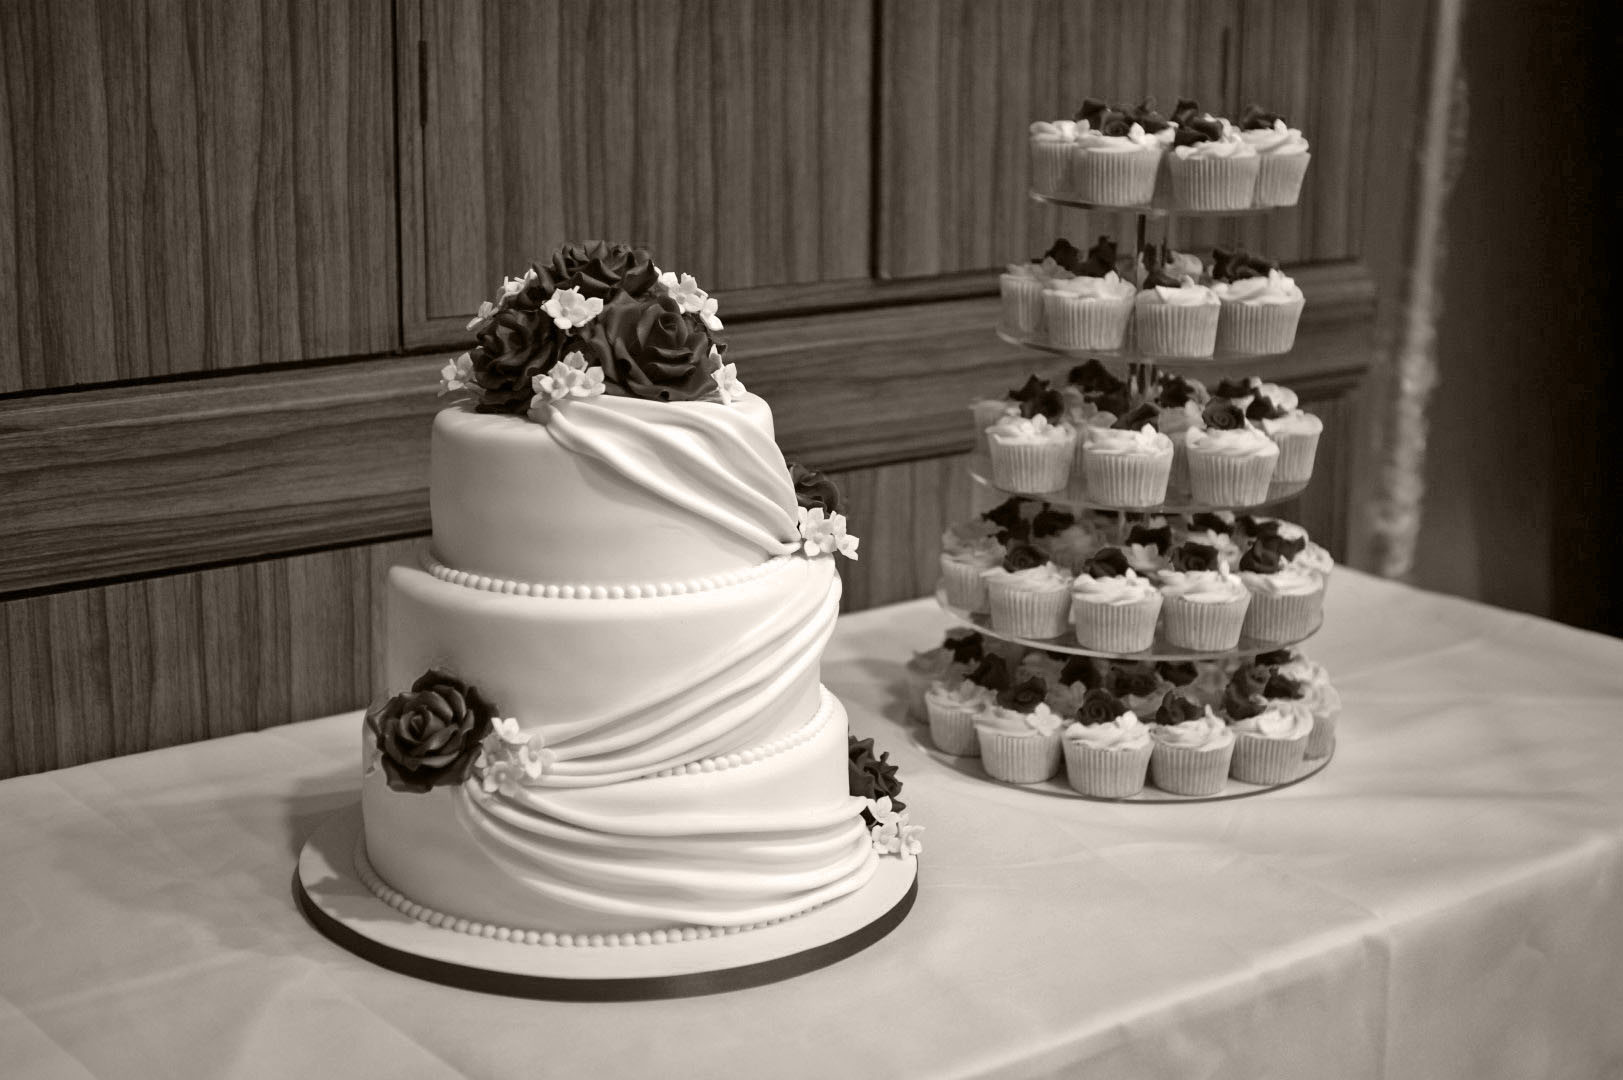 3 Layer Wedding Cakes  3 Tier Wedding Cake with Cupcake Tower Bakealous